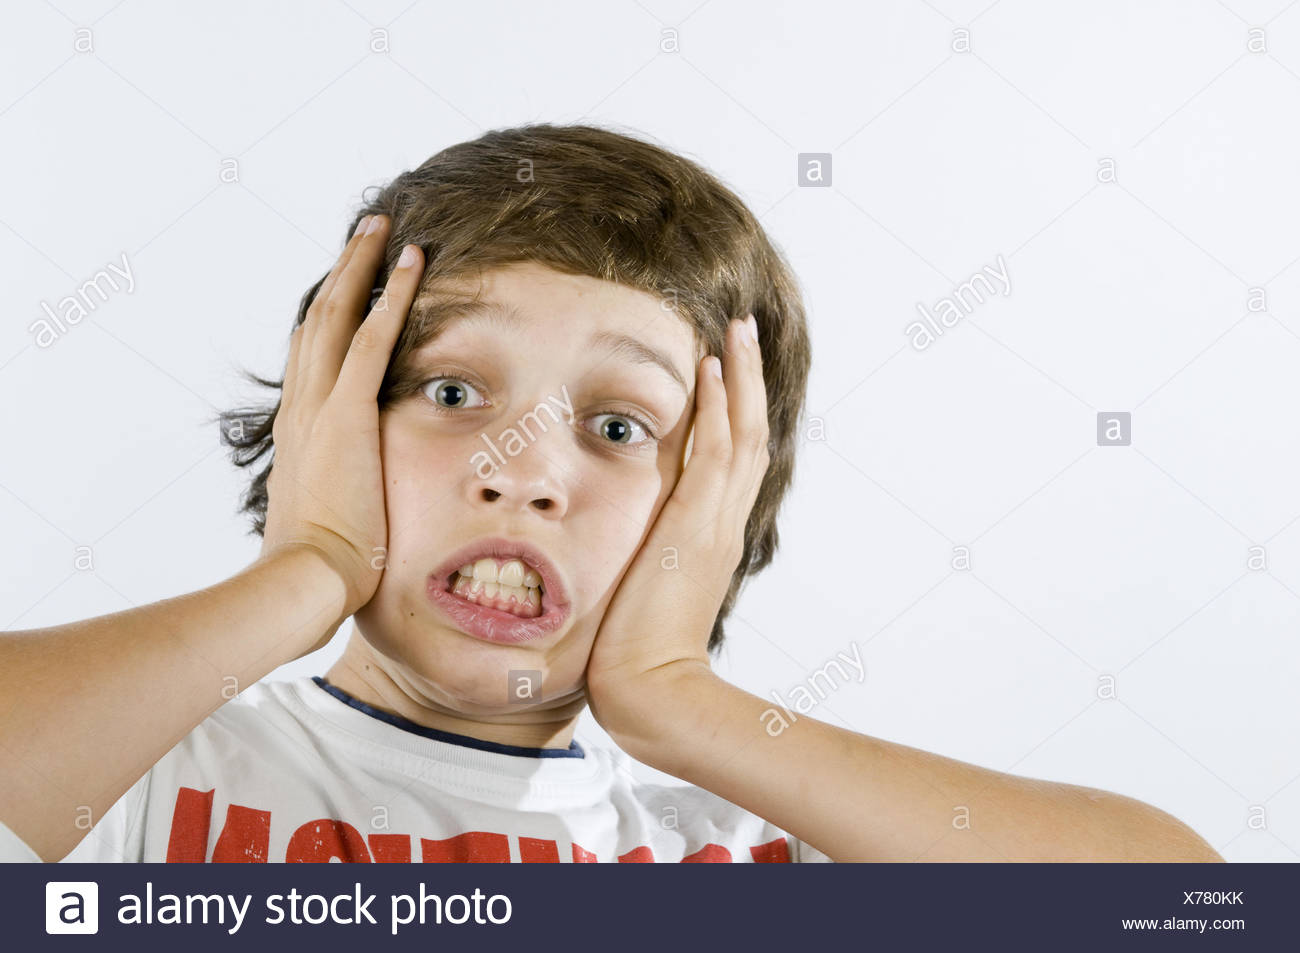 fearful grimacing of boy on white - Stock Image